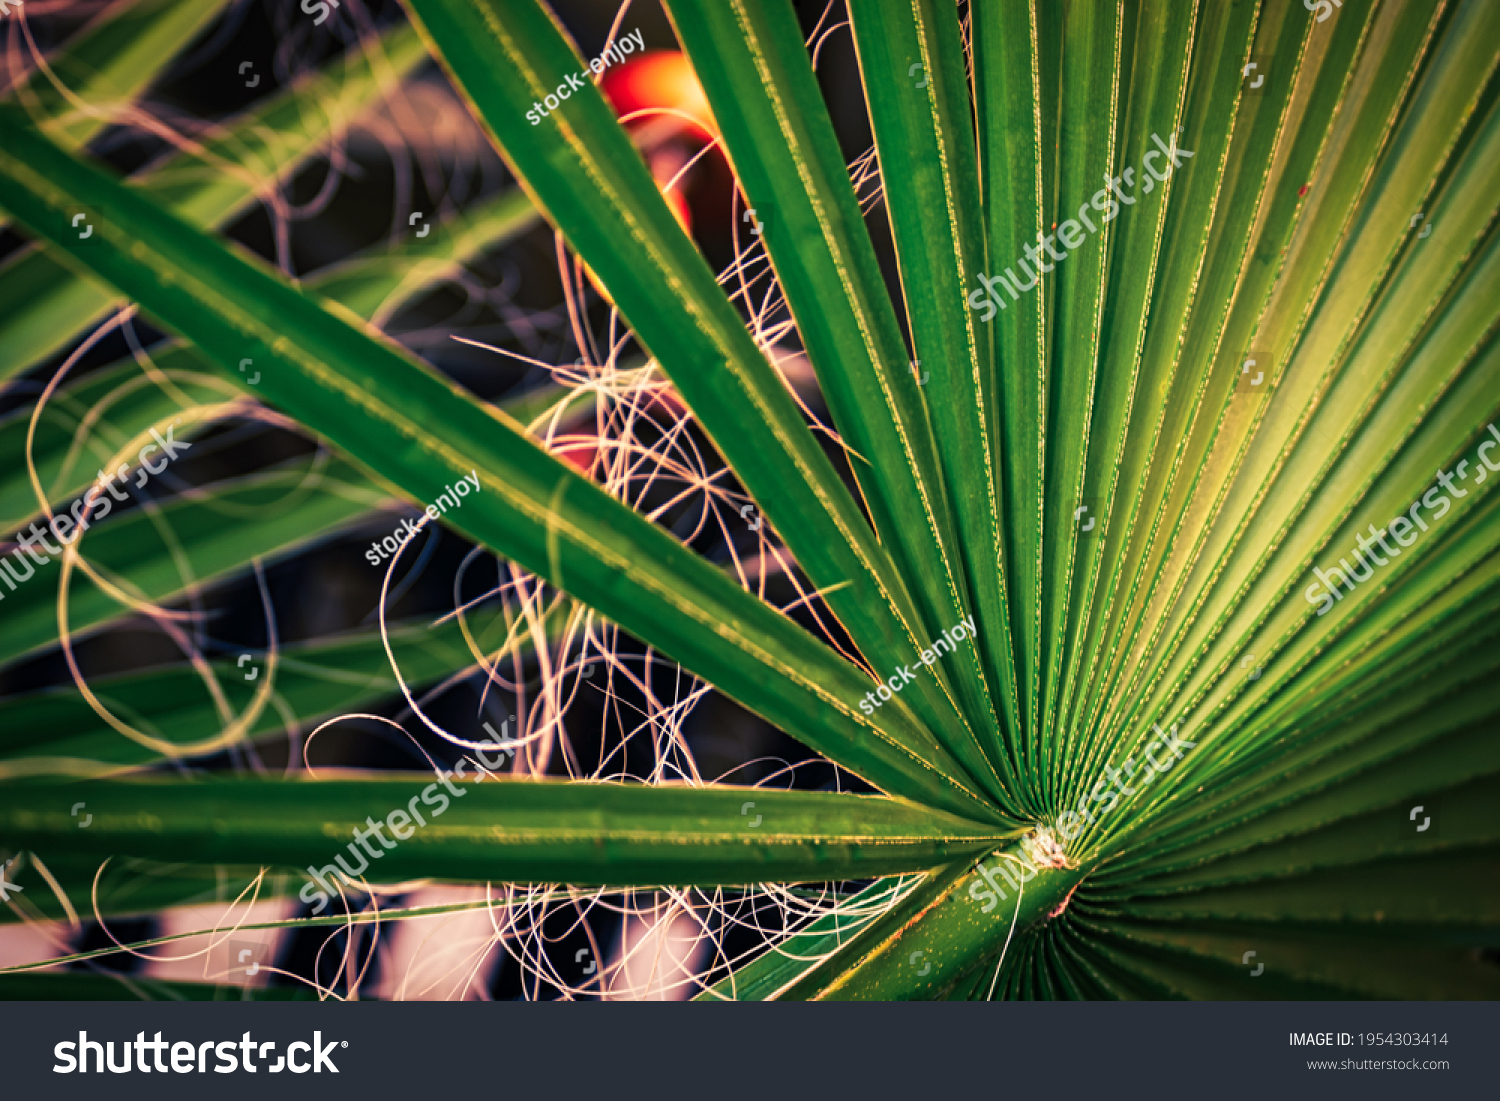 Leaves of decorative palm tree green background inside the room selective focus.